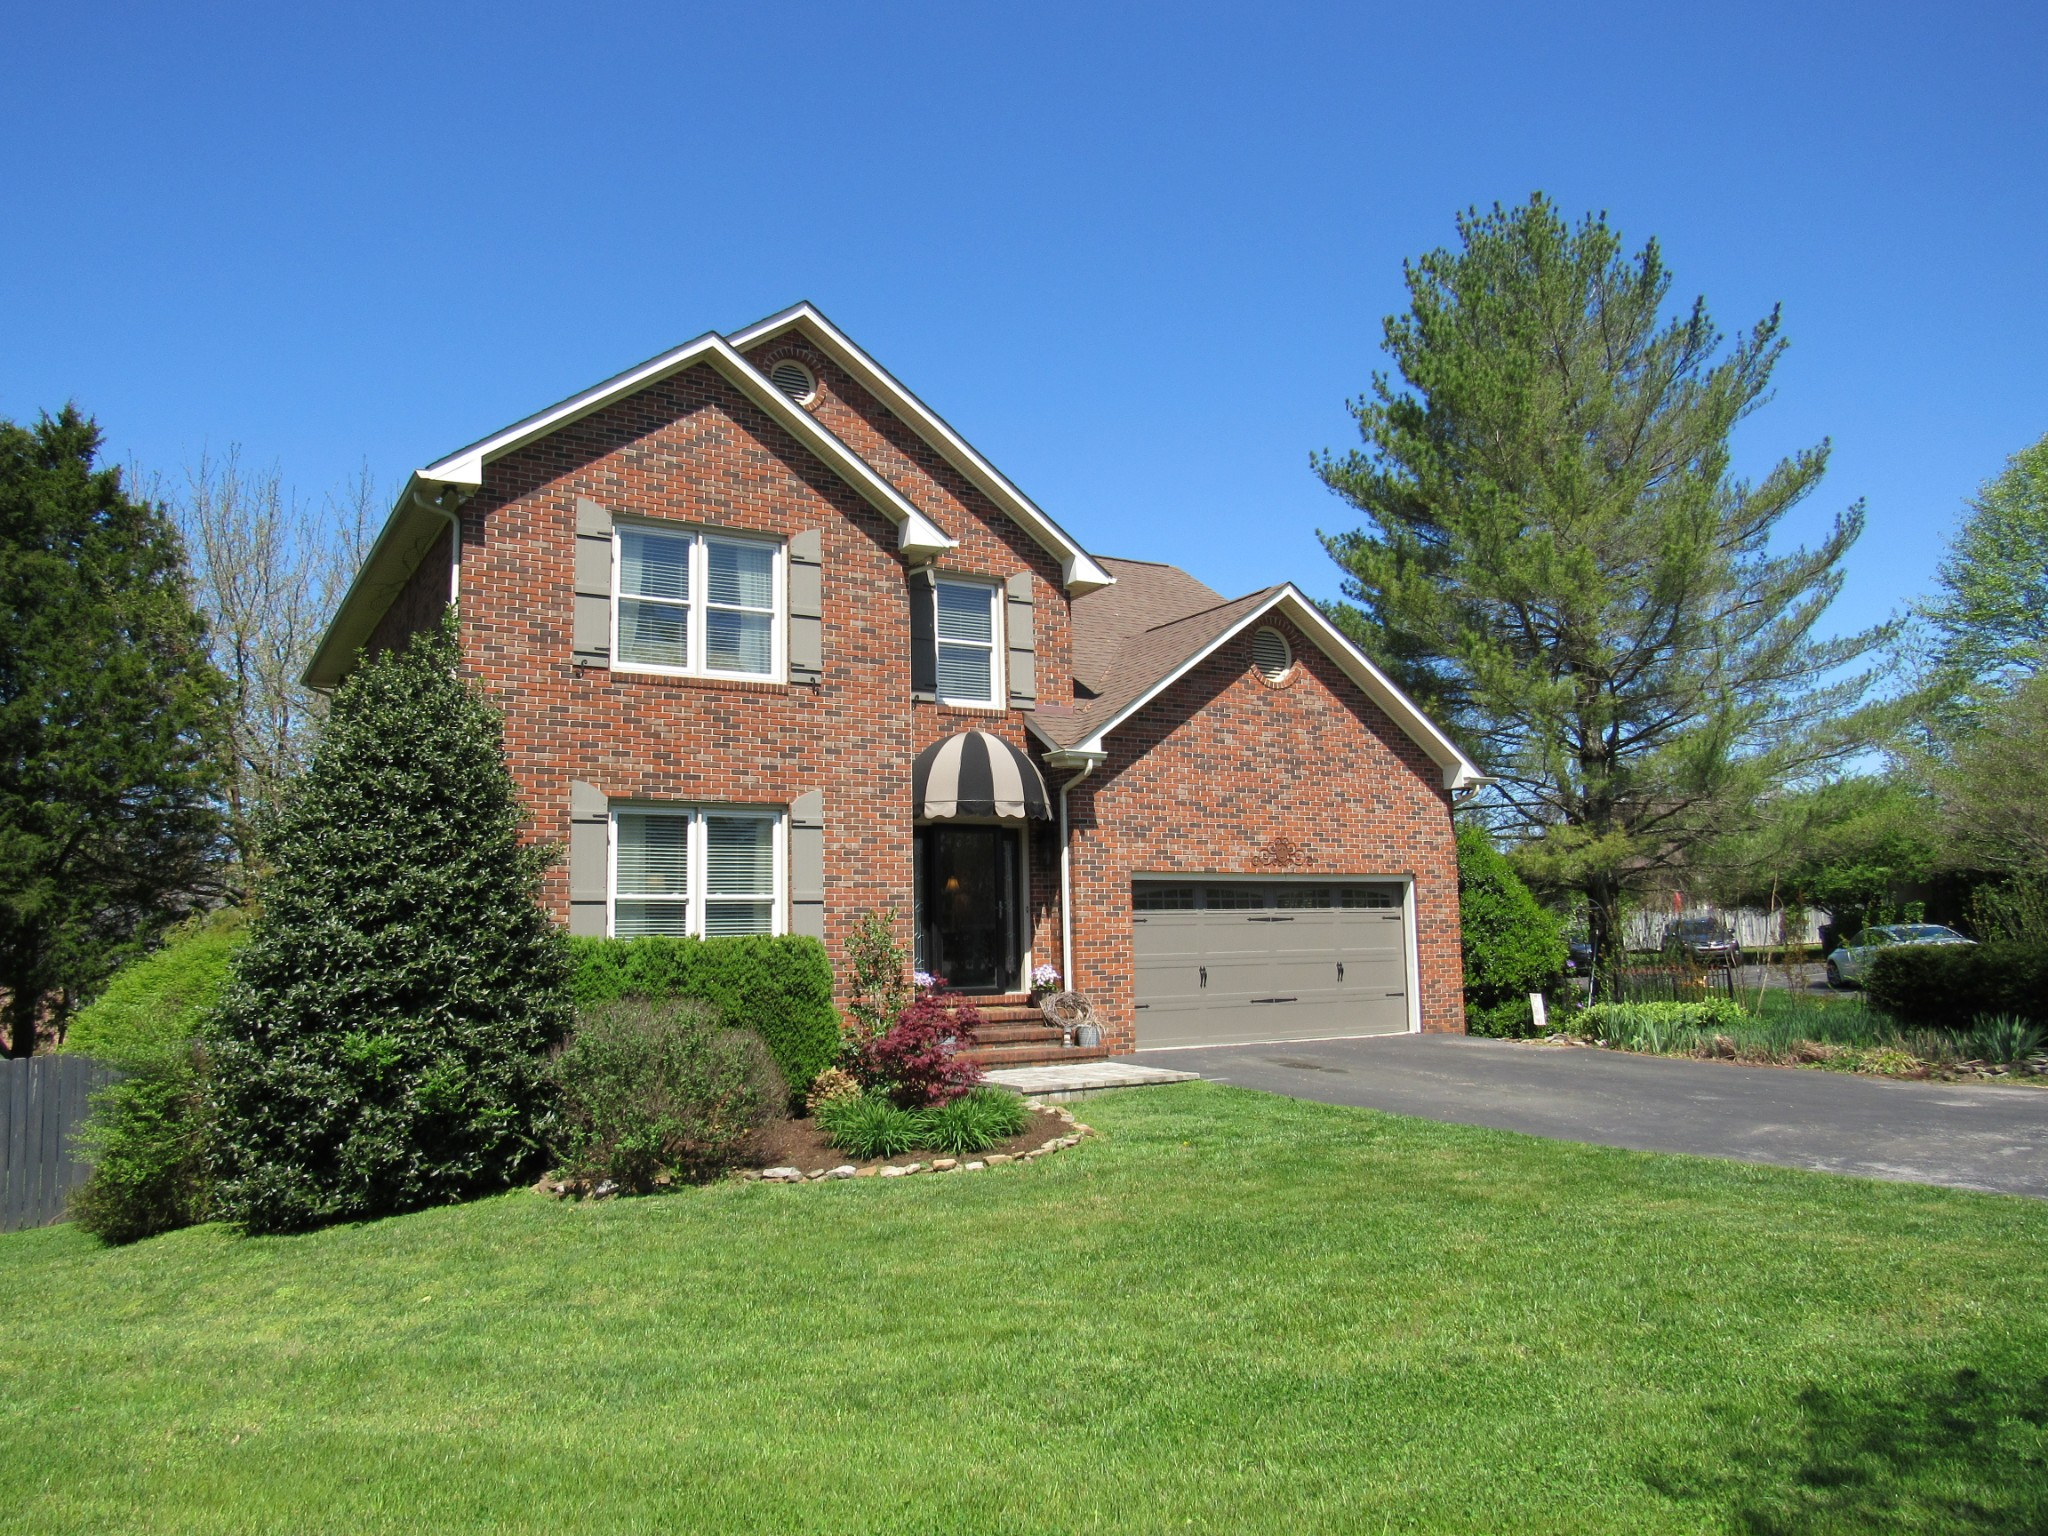 1075 Independence Ct, Cookeville, TN 38501 - Cookeville, TN real estate listing